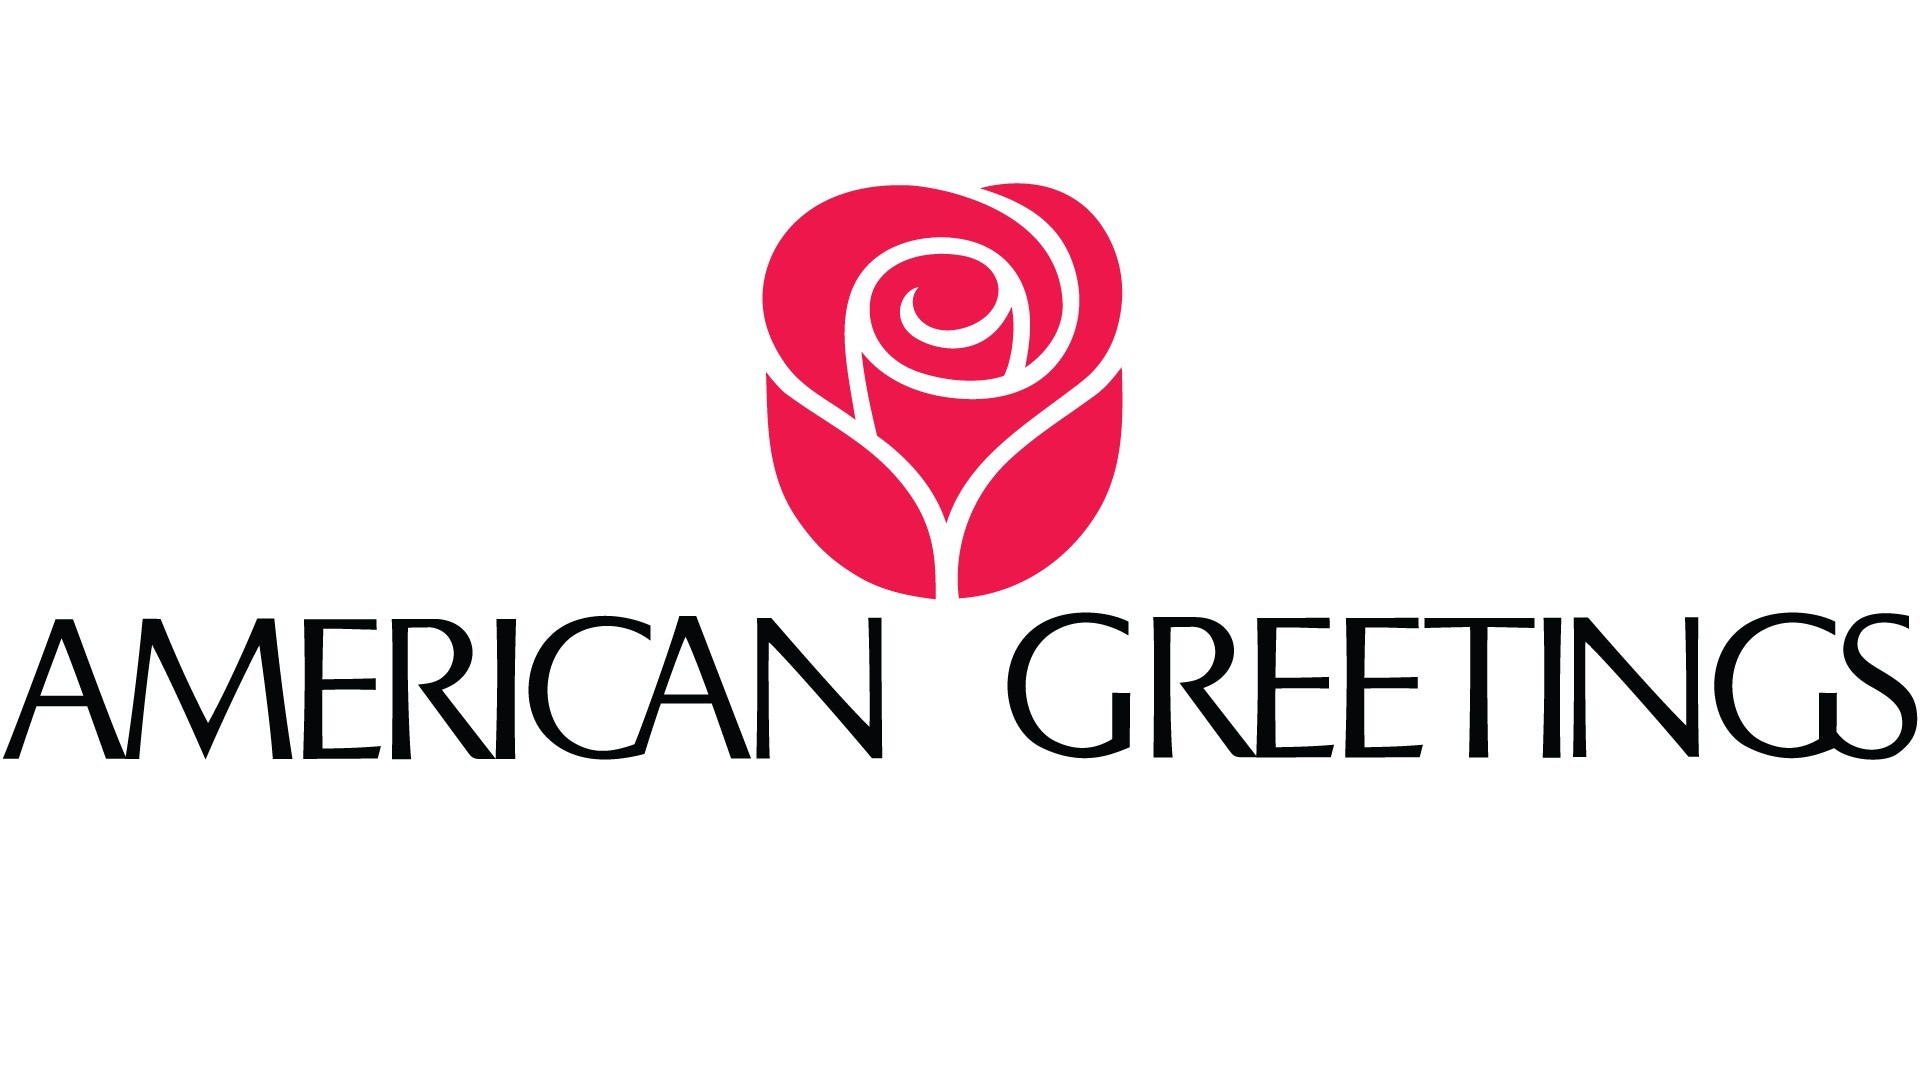 1920x1080 American Greetings Images